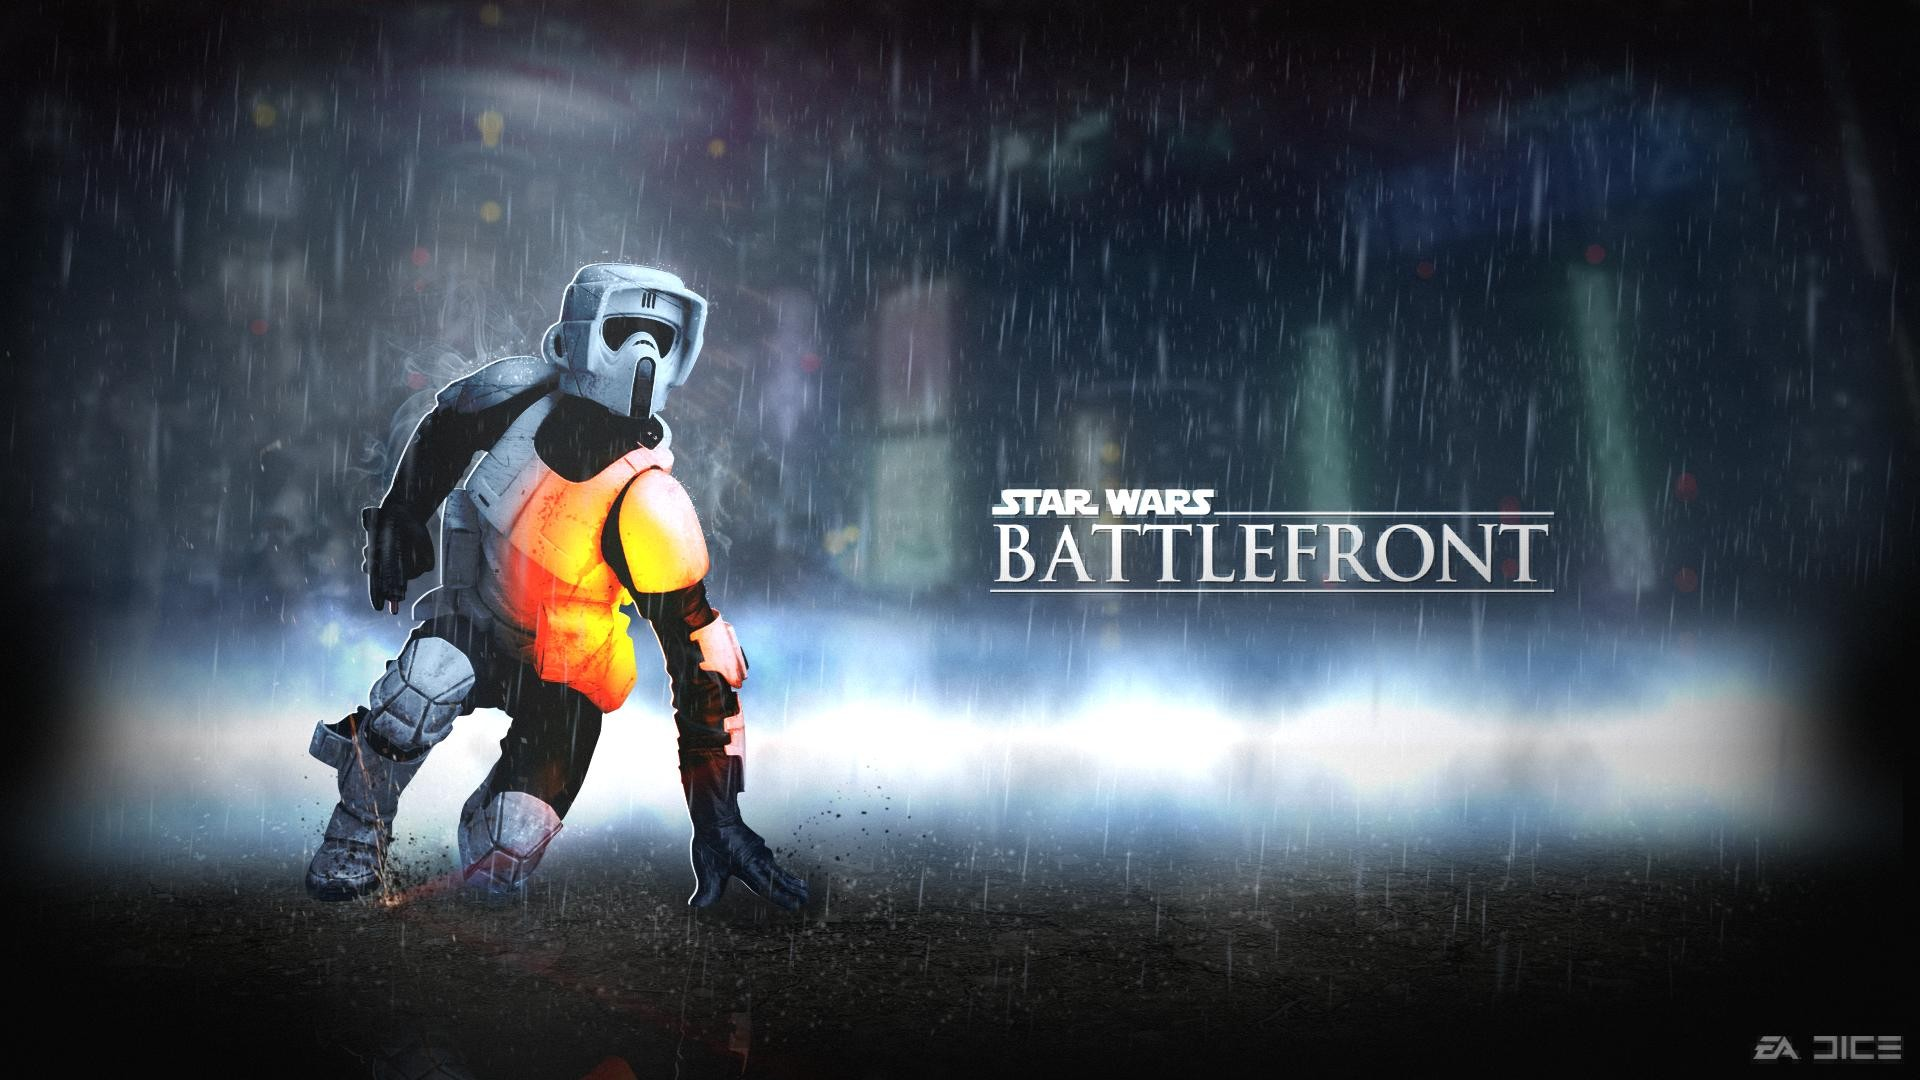 Battlefront Wallpaper Download Free Cool Backgrounds For